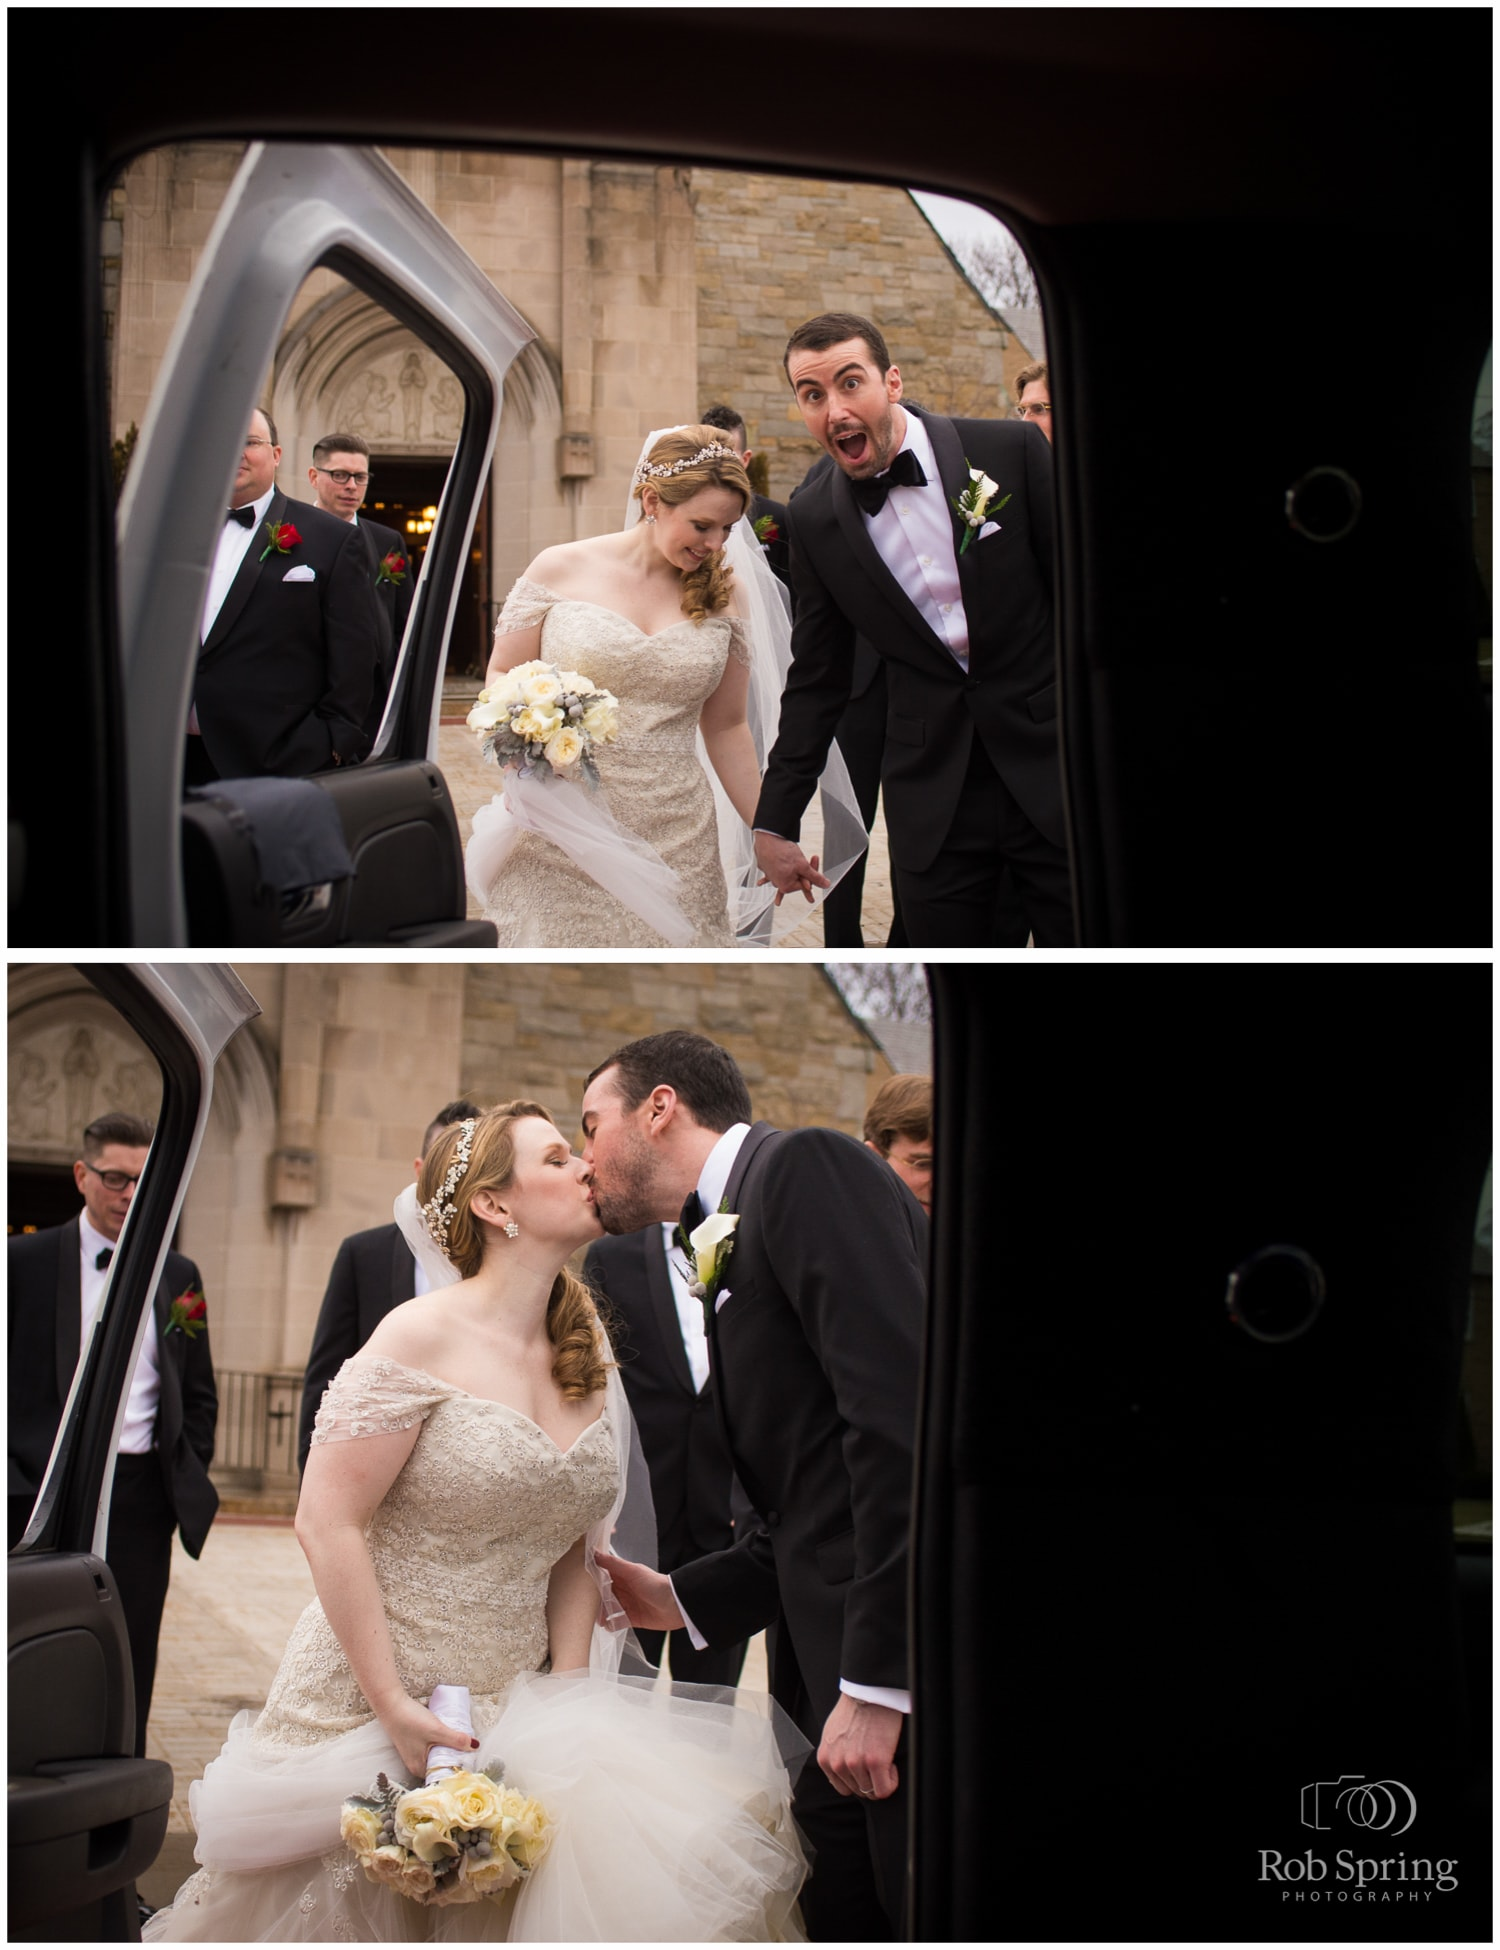 Funny groom getting in limo after church wedding | Glen Sanders Mansion Wedding photographer